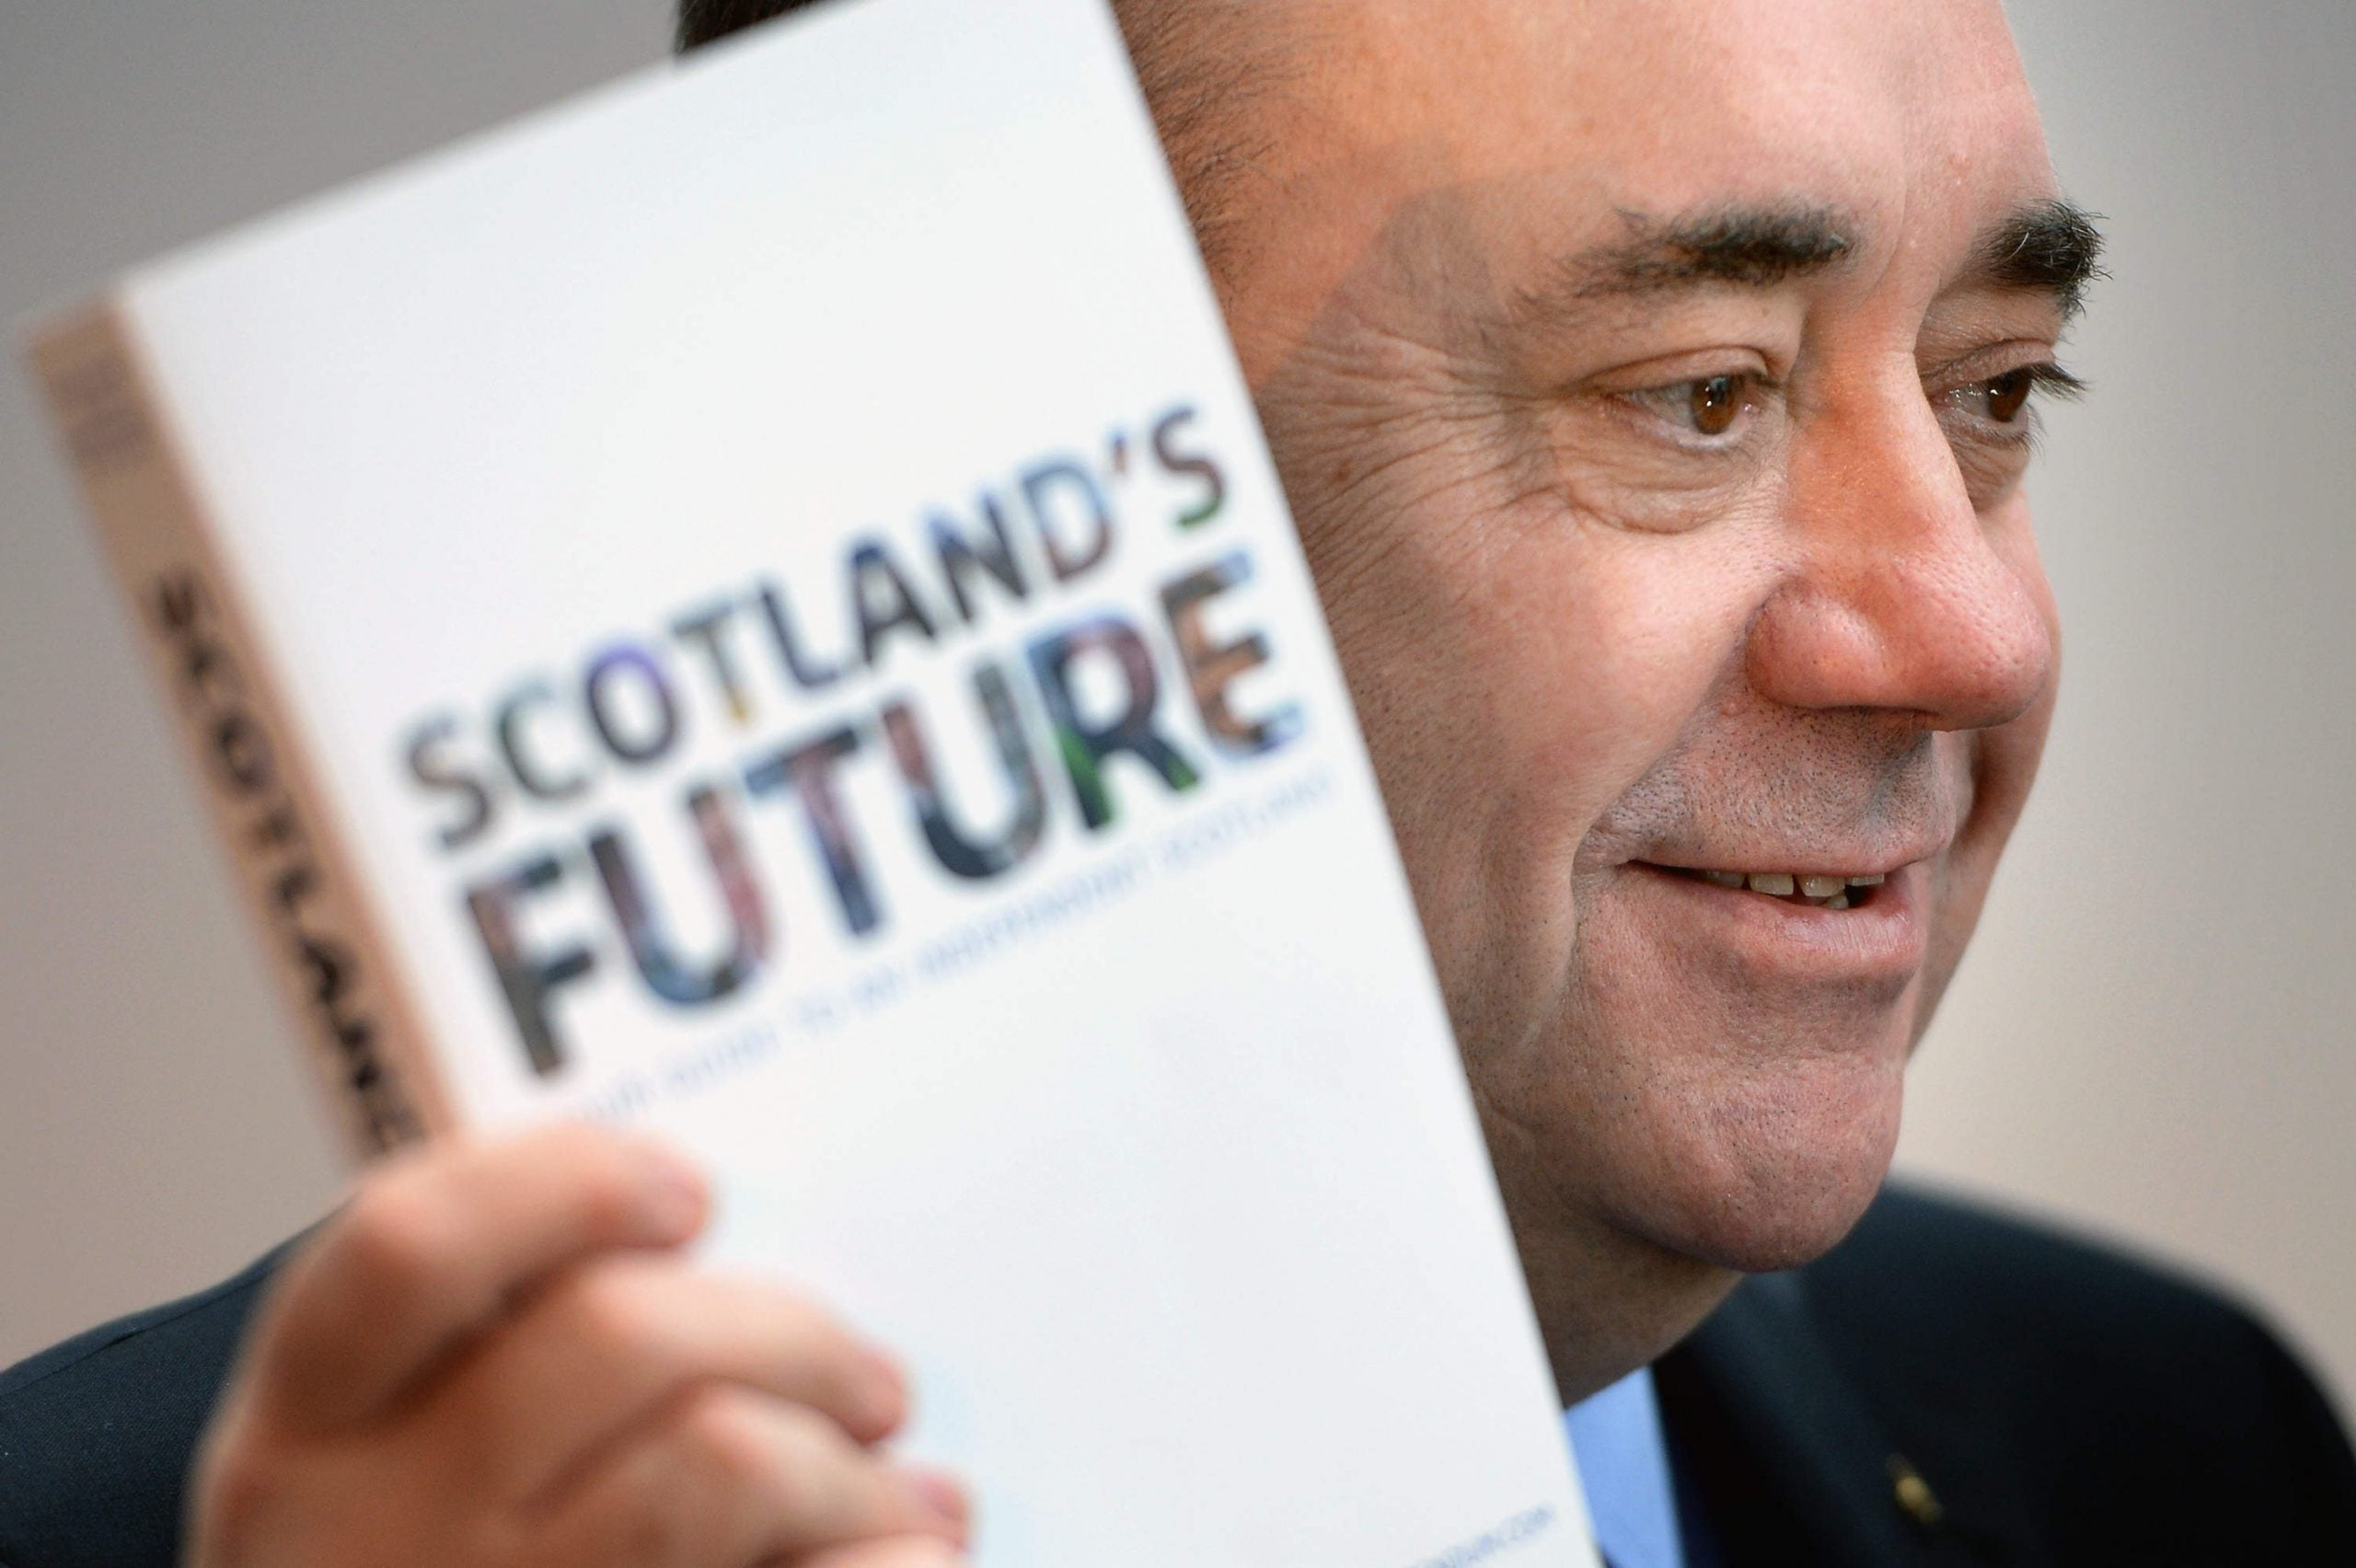 Alex Salmond: Why should Scotland let itself be ruled by the Tories?